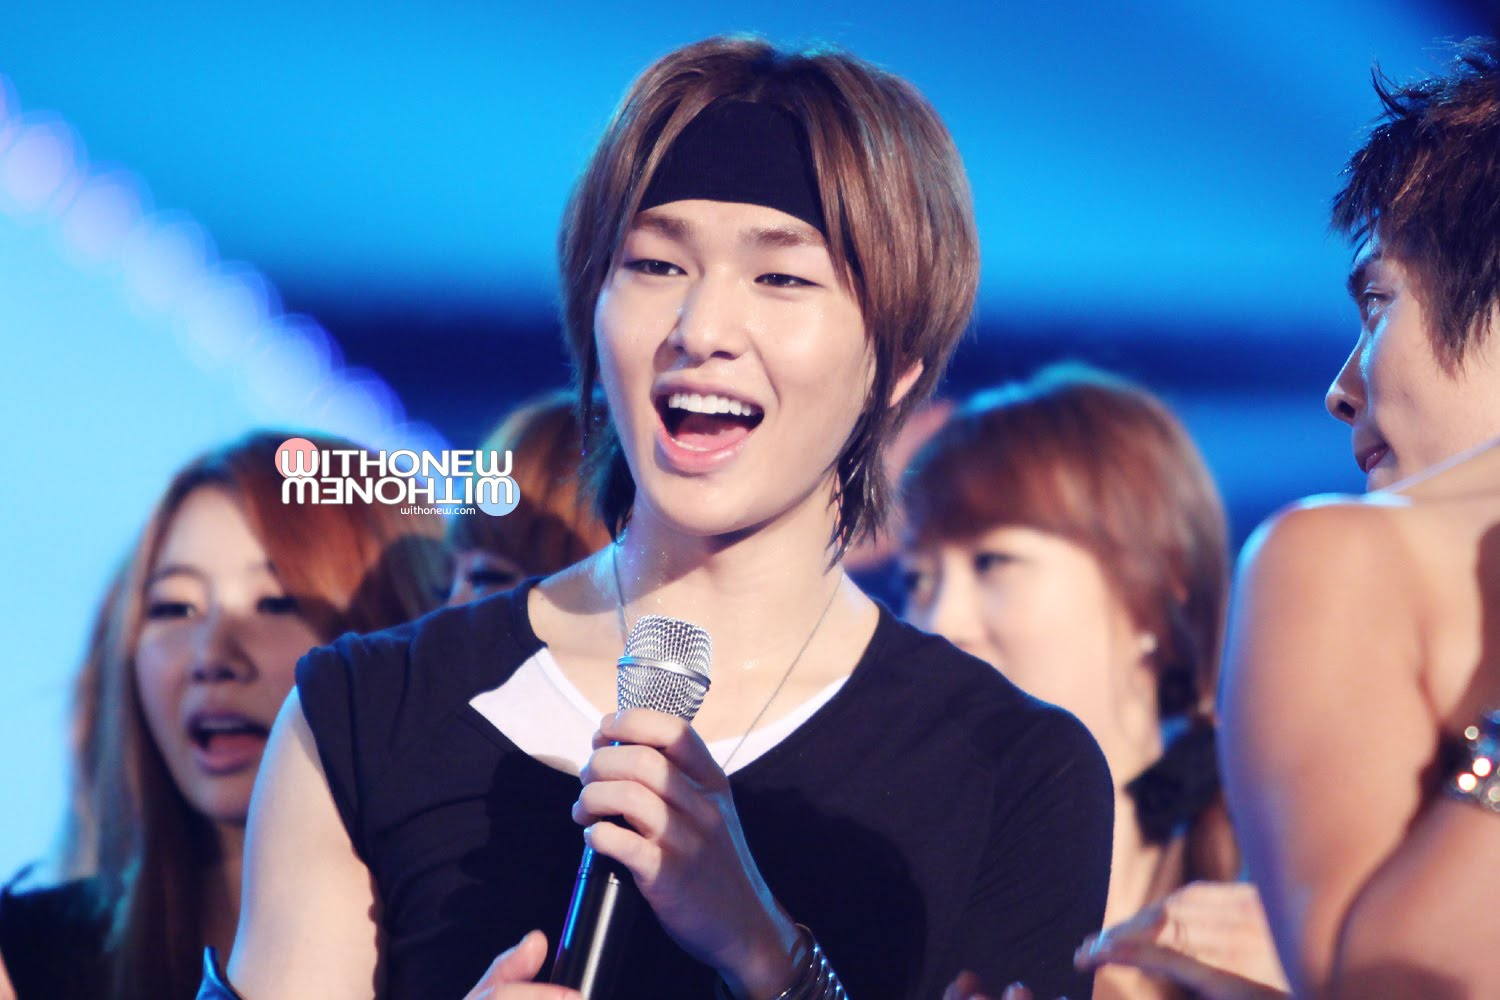 http://onewstly.files.wordpress.com/2010/08/onew-012.jpg